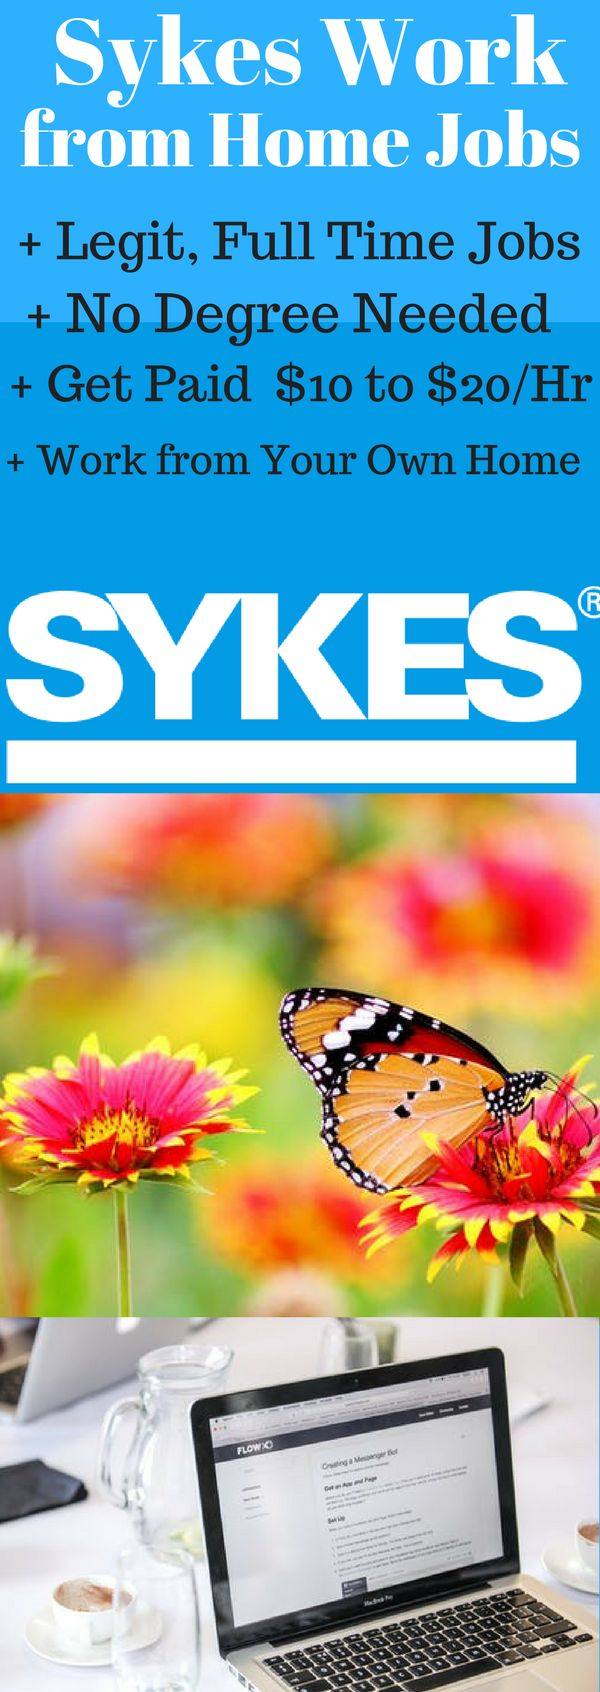 Work from Home Jobs. Sykes Work at Home Jobs. Looking for Sykes Work from Home Jobs? Get the latest Work from Home Jobs from Sykes Enterprises. Sykes Work at Home Customer Service Representative Jobs offer very good opportunity for stay at home moms to work from home and make extra money online. Apply for Sykes Work at Home Jobs today from https://www.howwemakemoneyonline.com/sykes-work-from-home-customer-services-representatives/  #workfromhome #workathome  #sykesworkathomejobs…